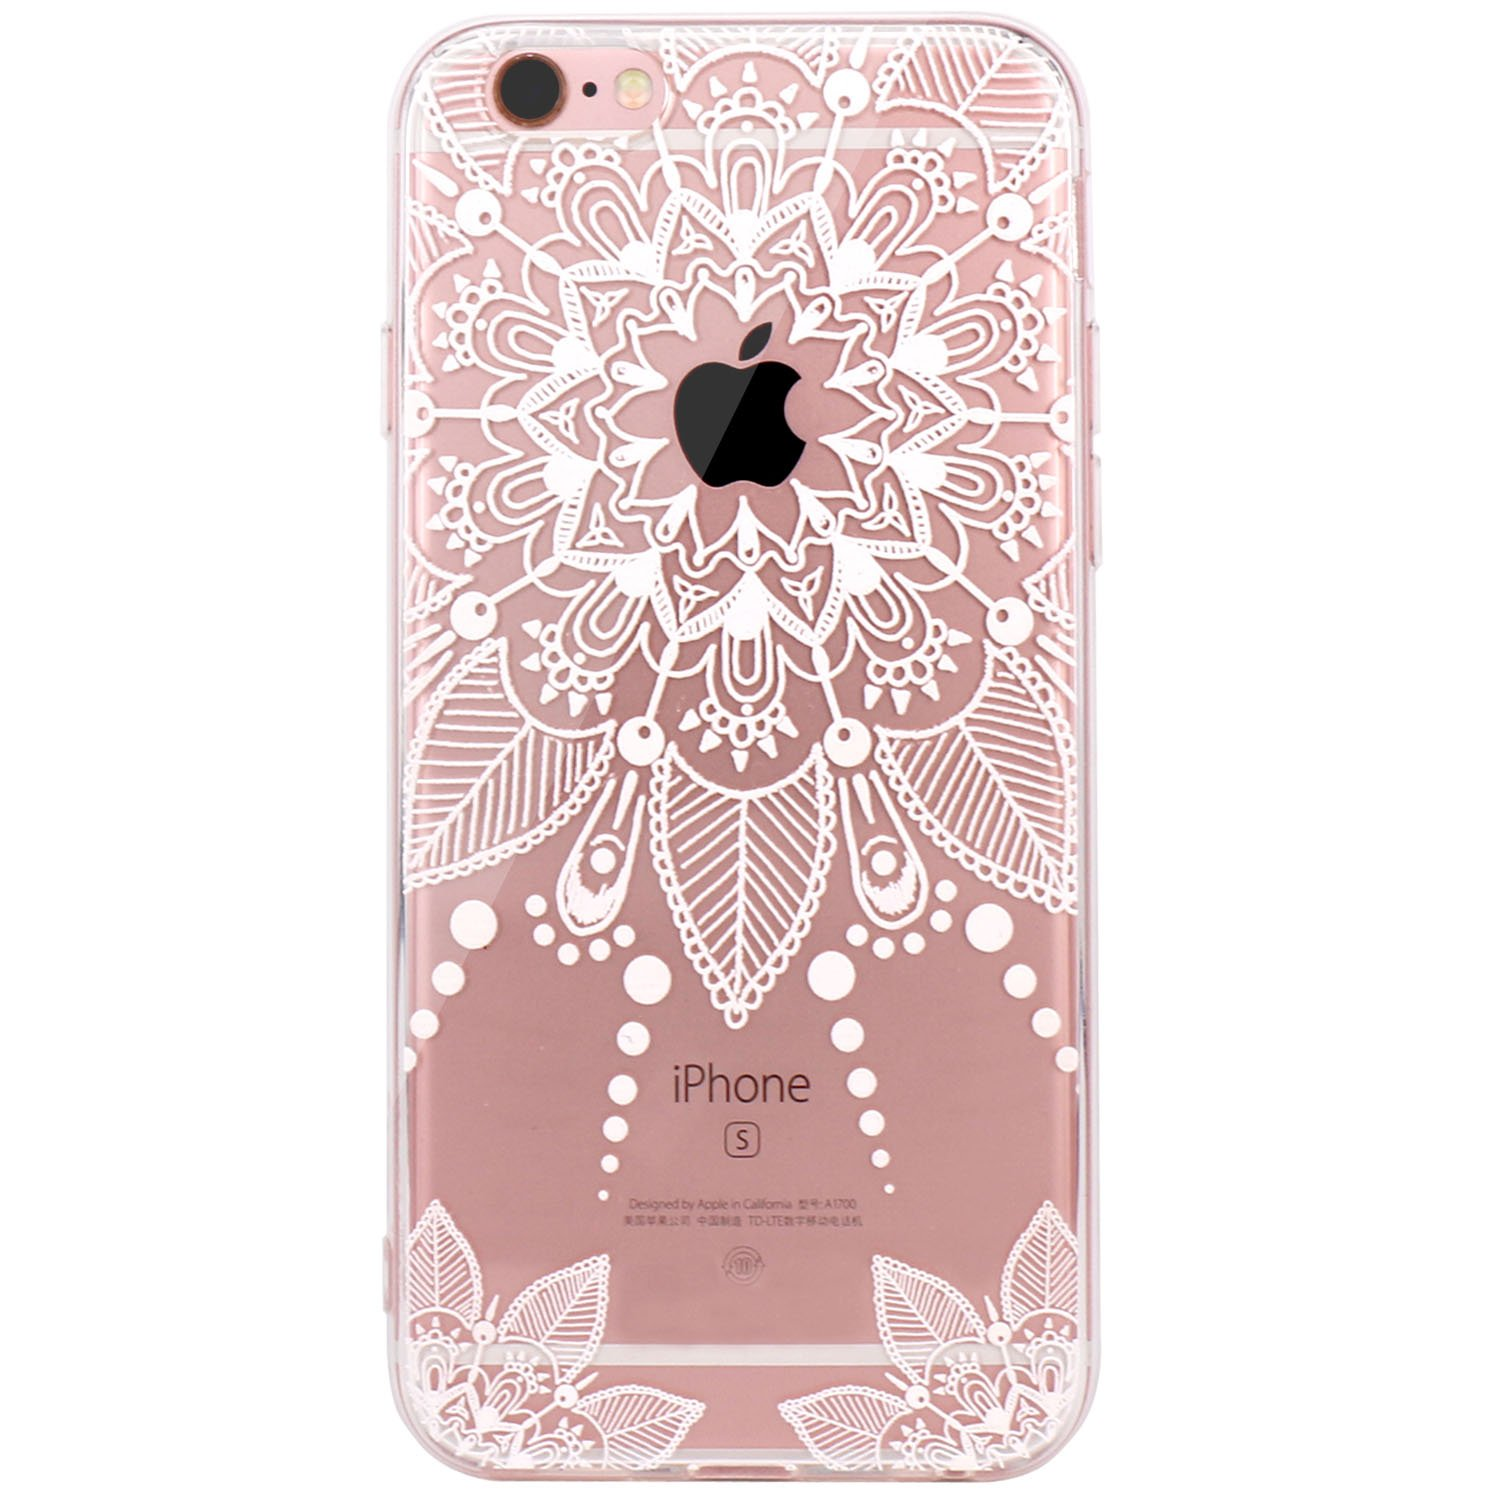 JIAXIUFEN iPhone 6 Funda, Funda de Silicona Suave Case Cover ...